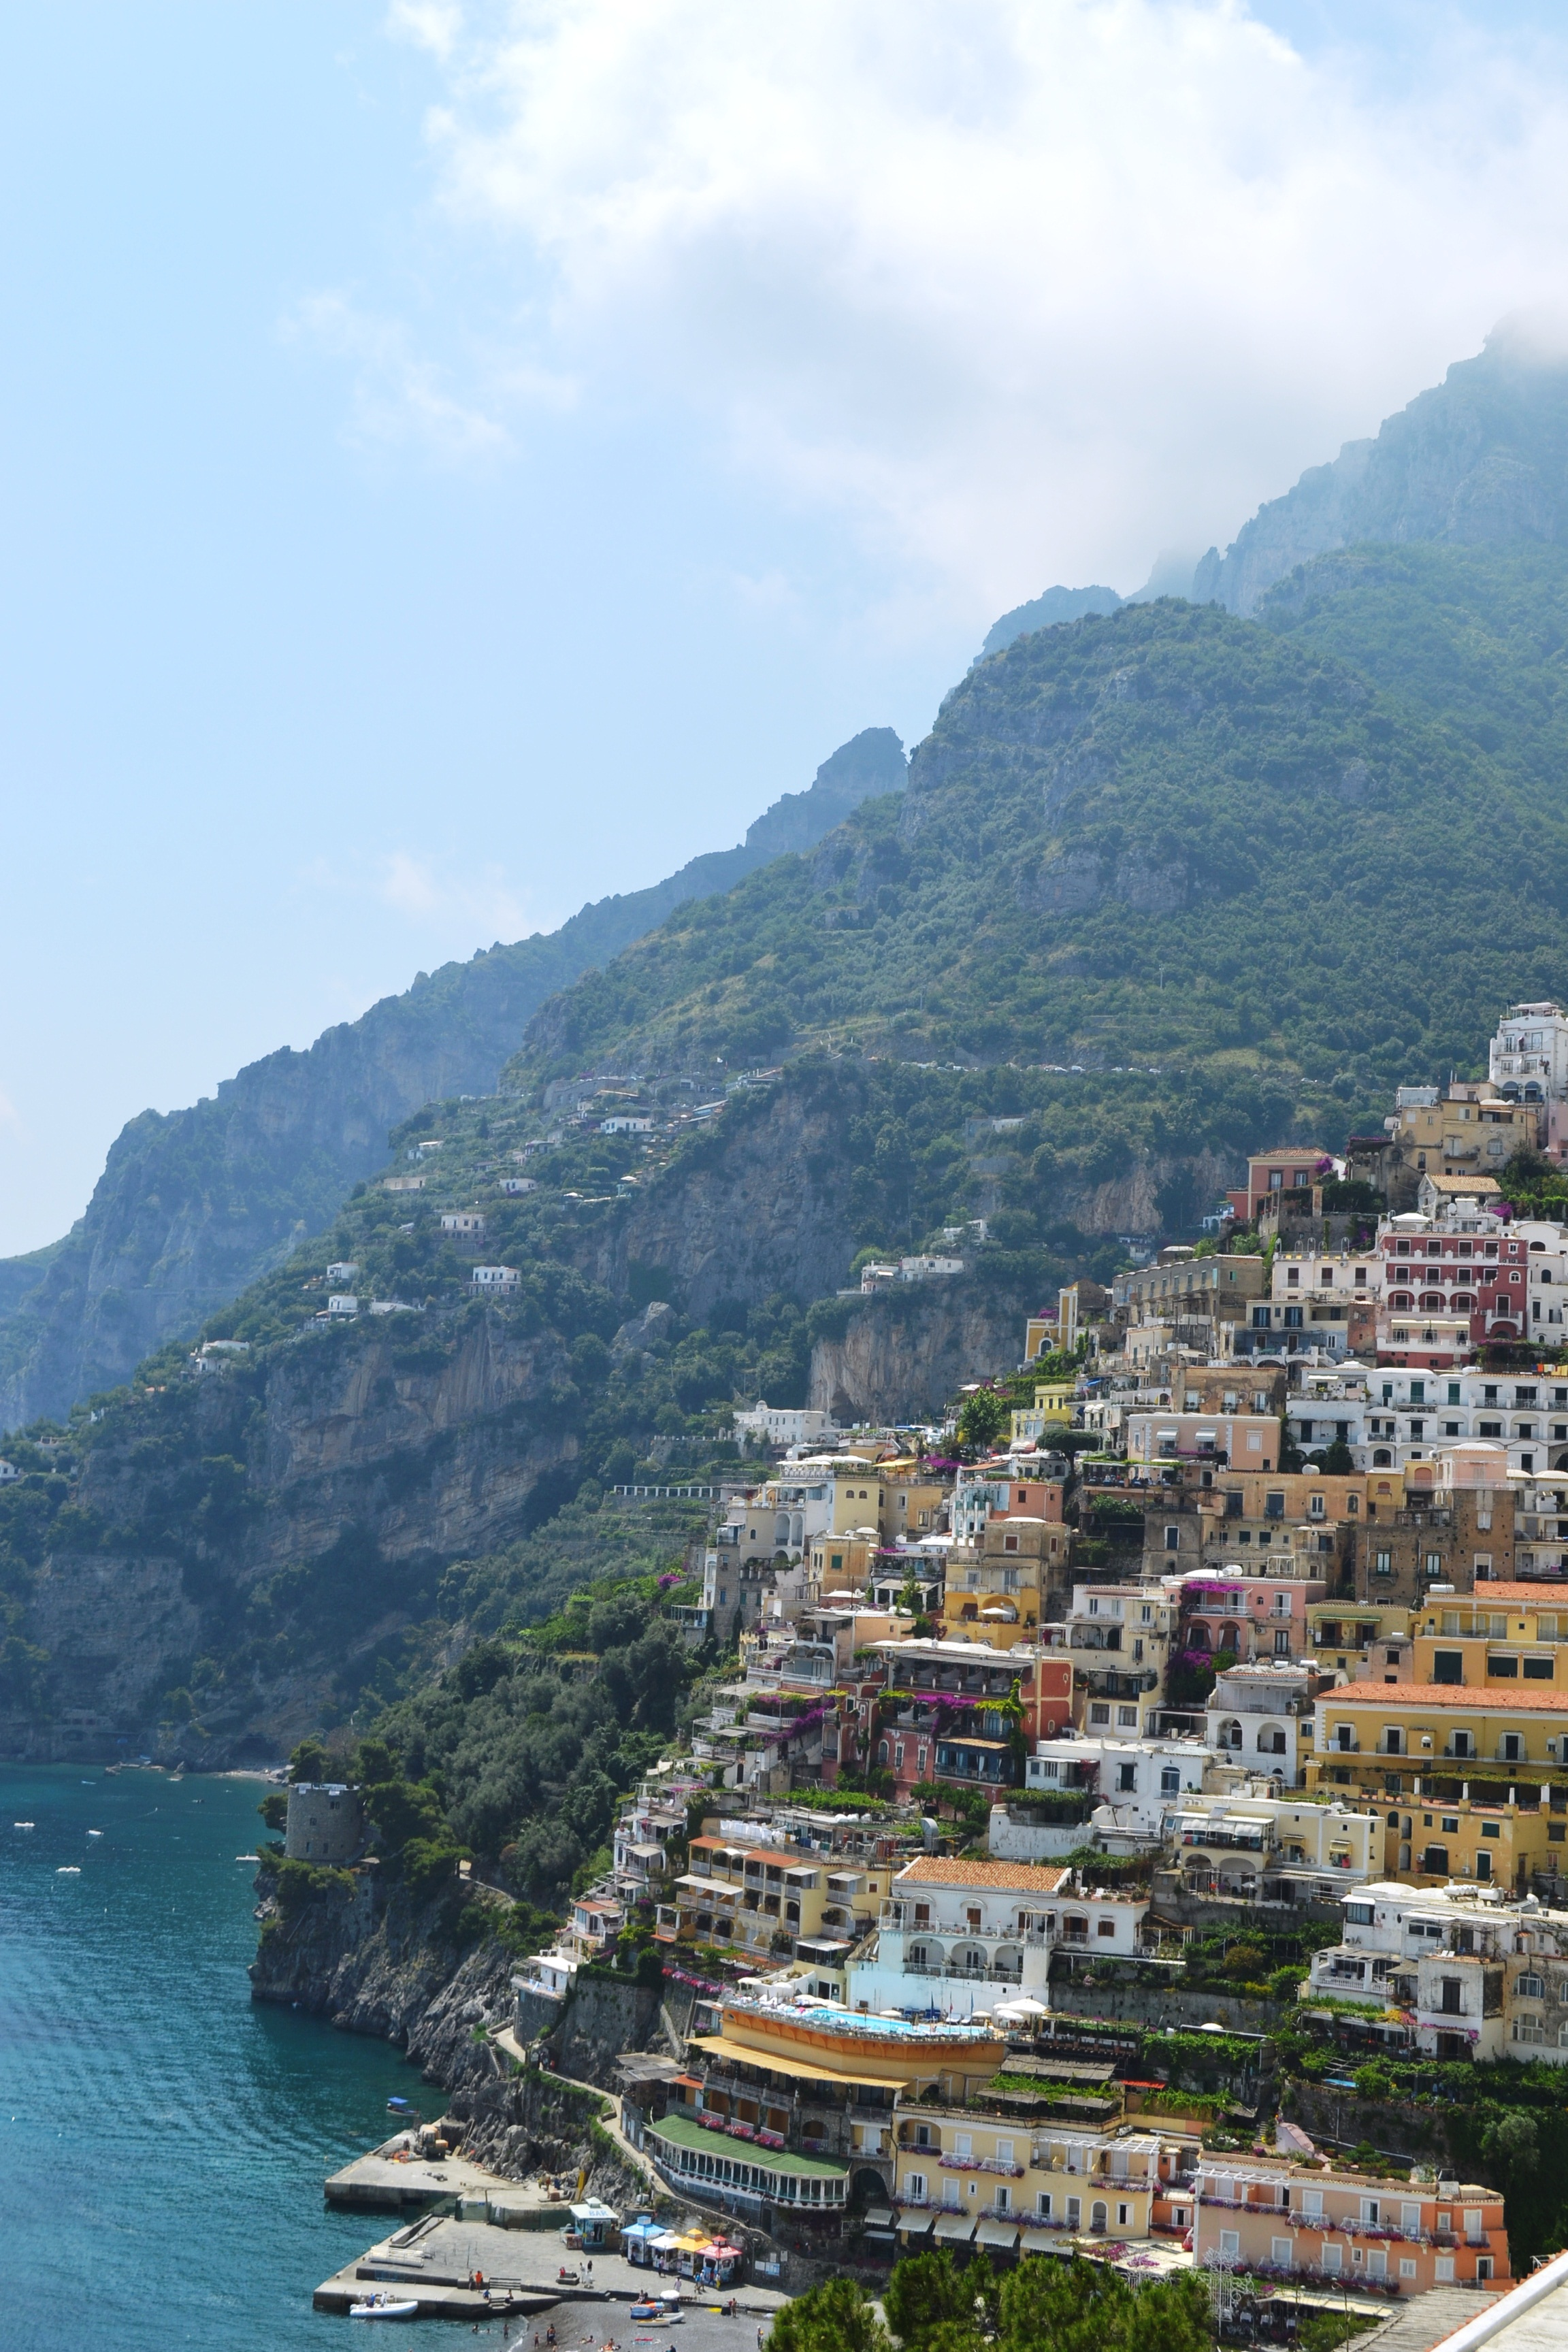 The Amalfi Coast